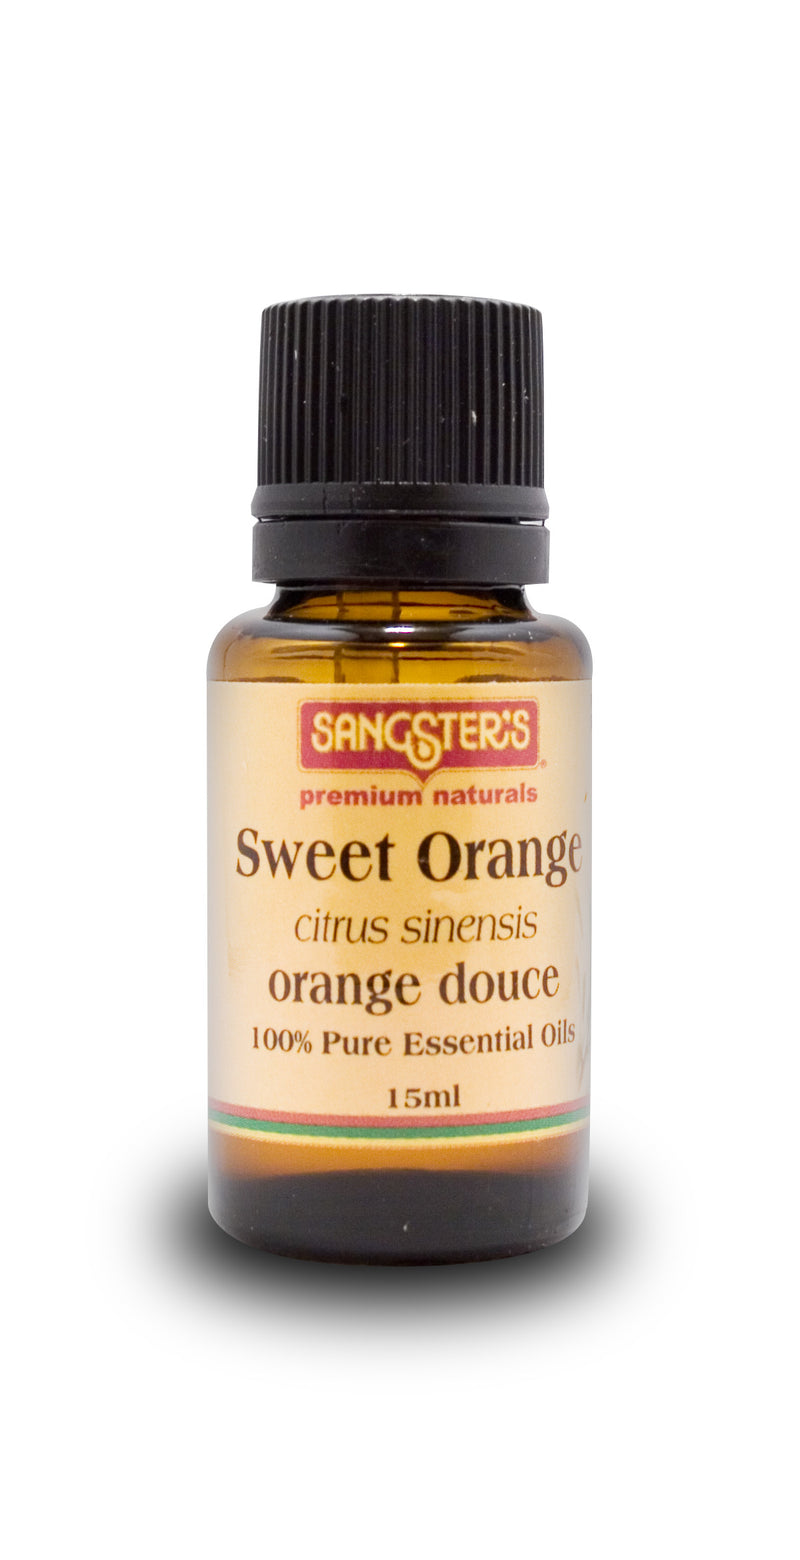 Sangster's Sweet Orange 100% Pure Essential Oil 15ml